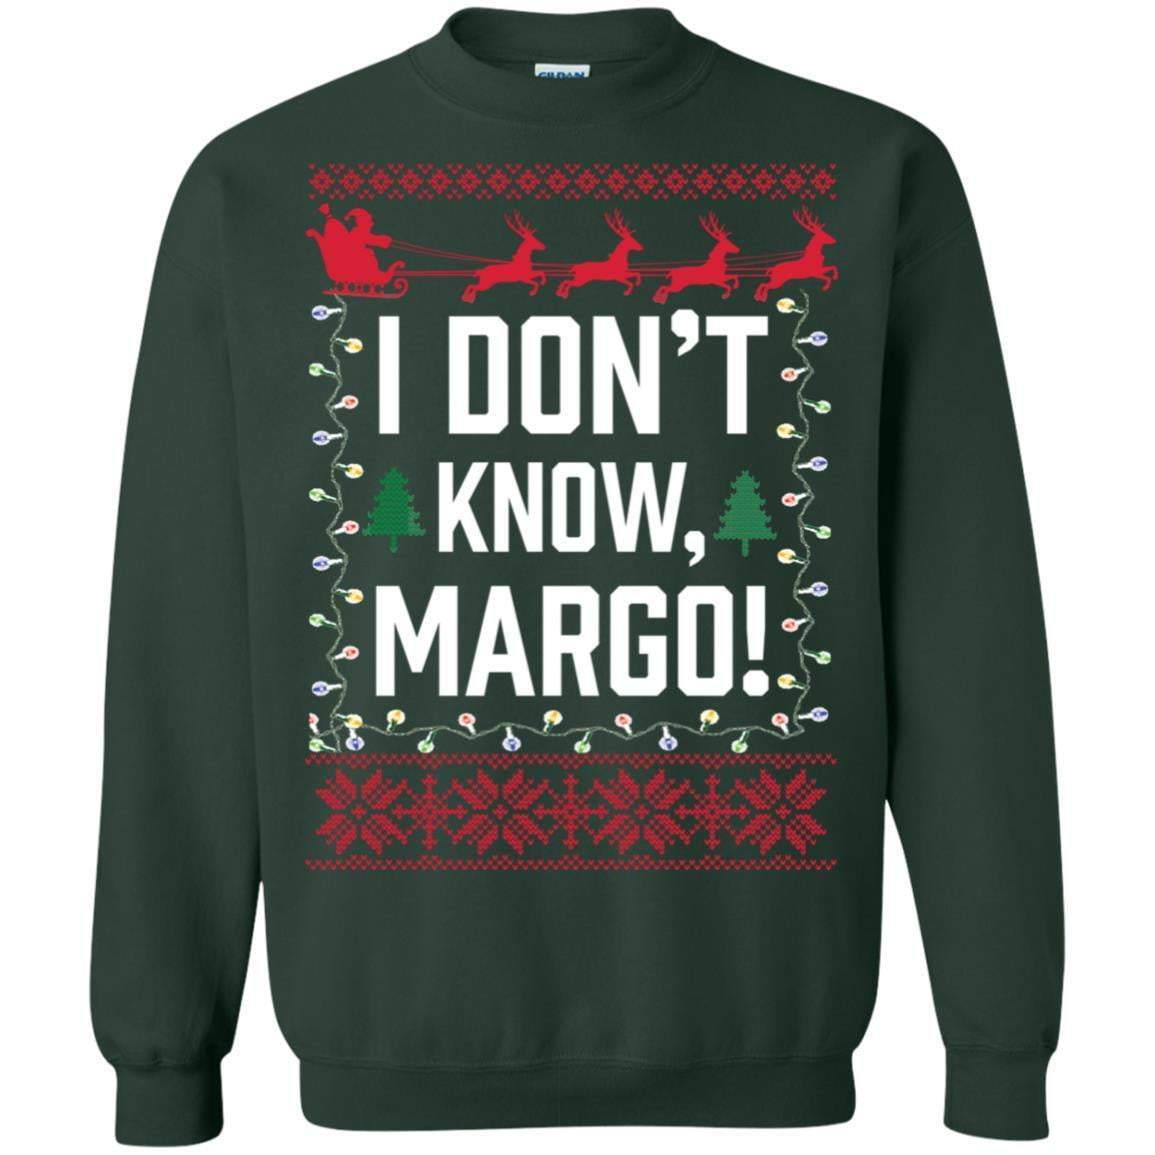 572471f42 TODD AND MARGO IDK Christmas T s And Crew s